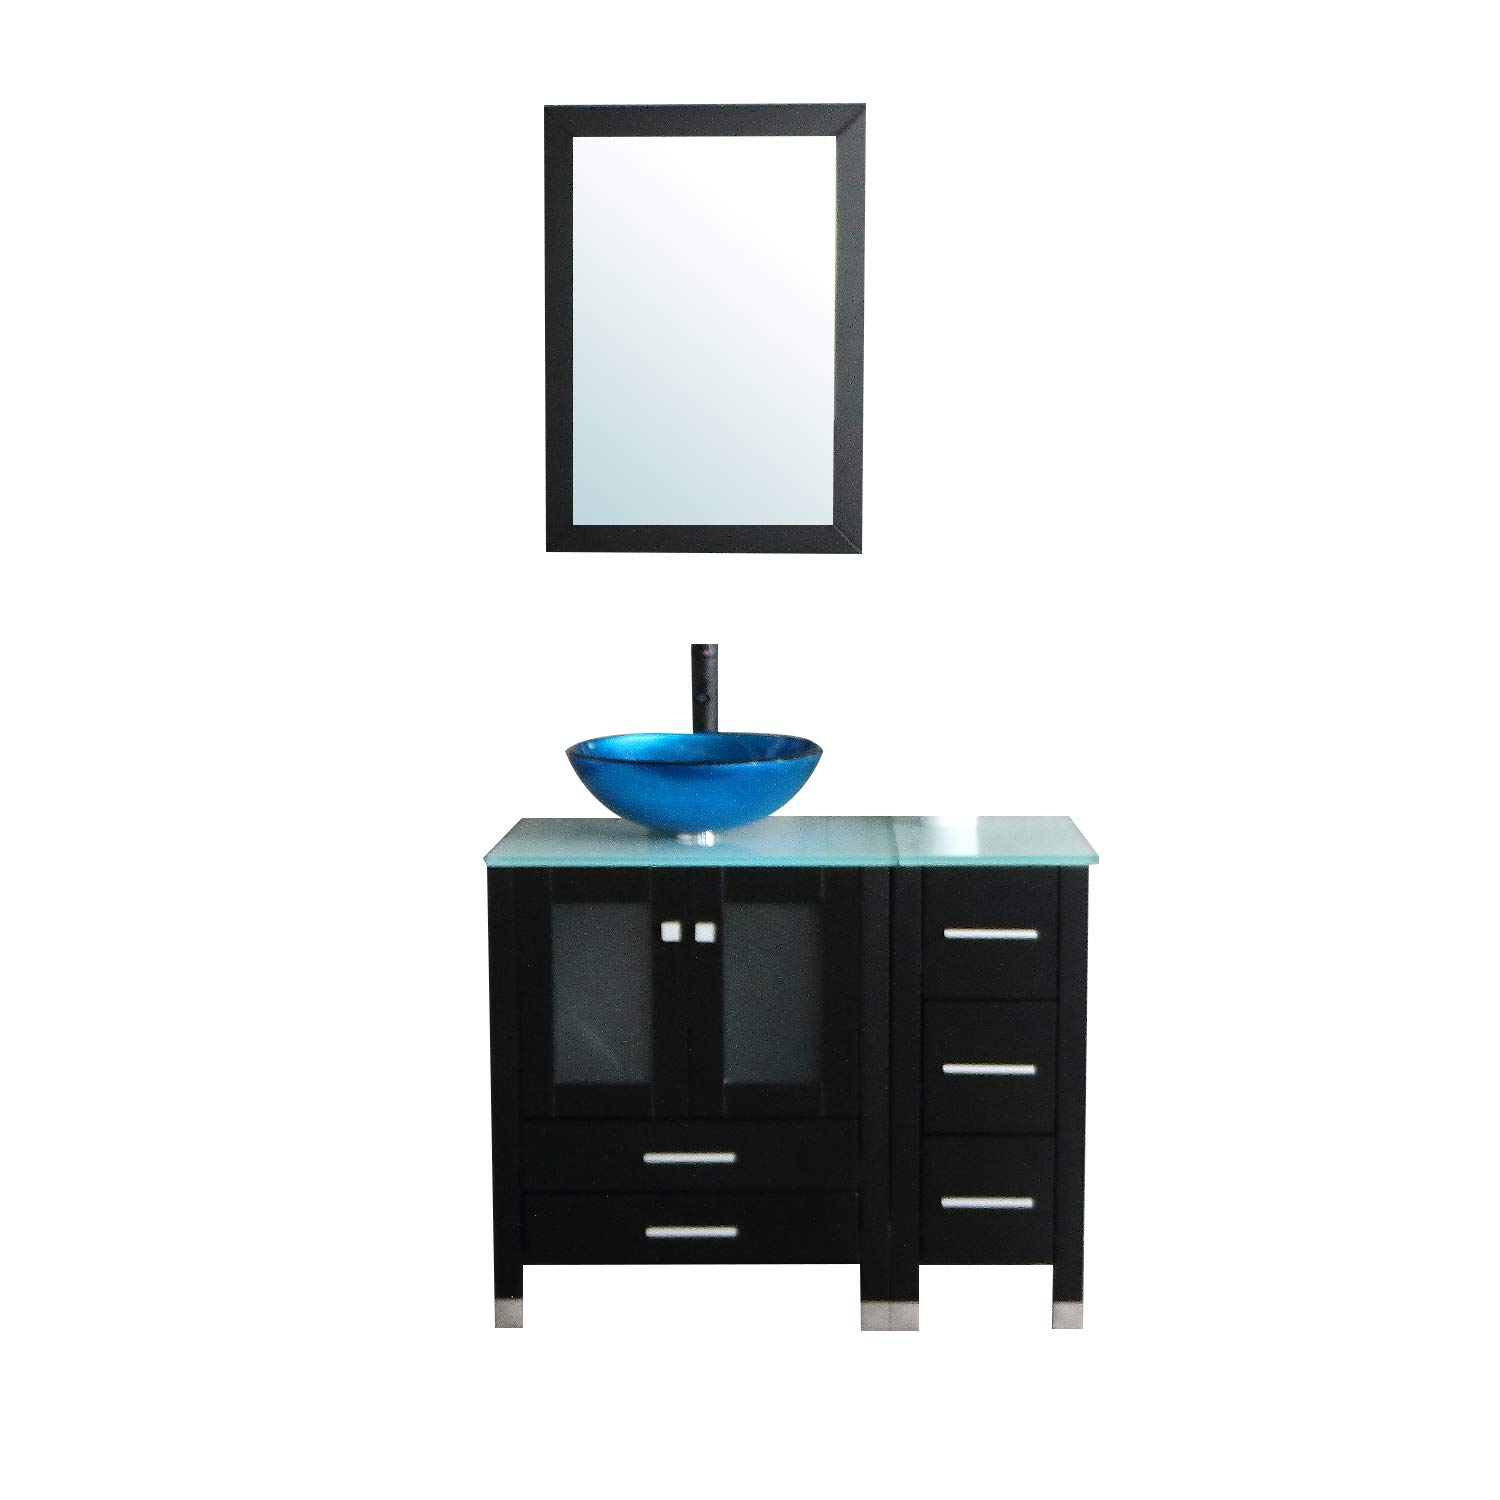 Walcut 36 Bathroom Vanity And Sink Combo Mdf Wood Cabinet And Glass Vessel Sink And Faucet Combo 1 Amazon Com